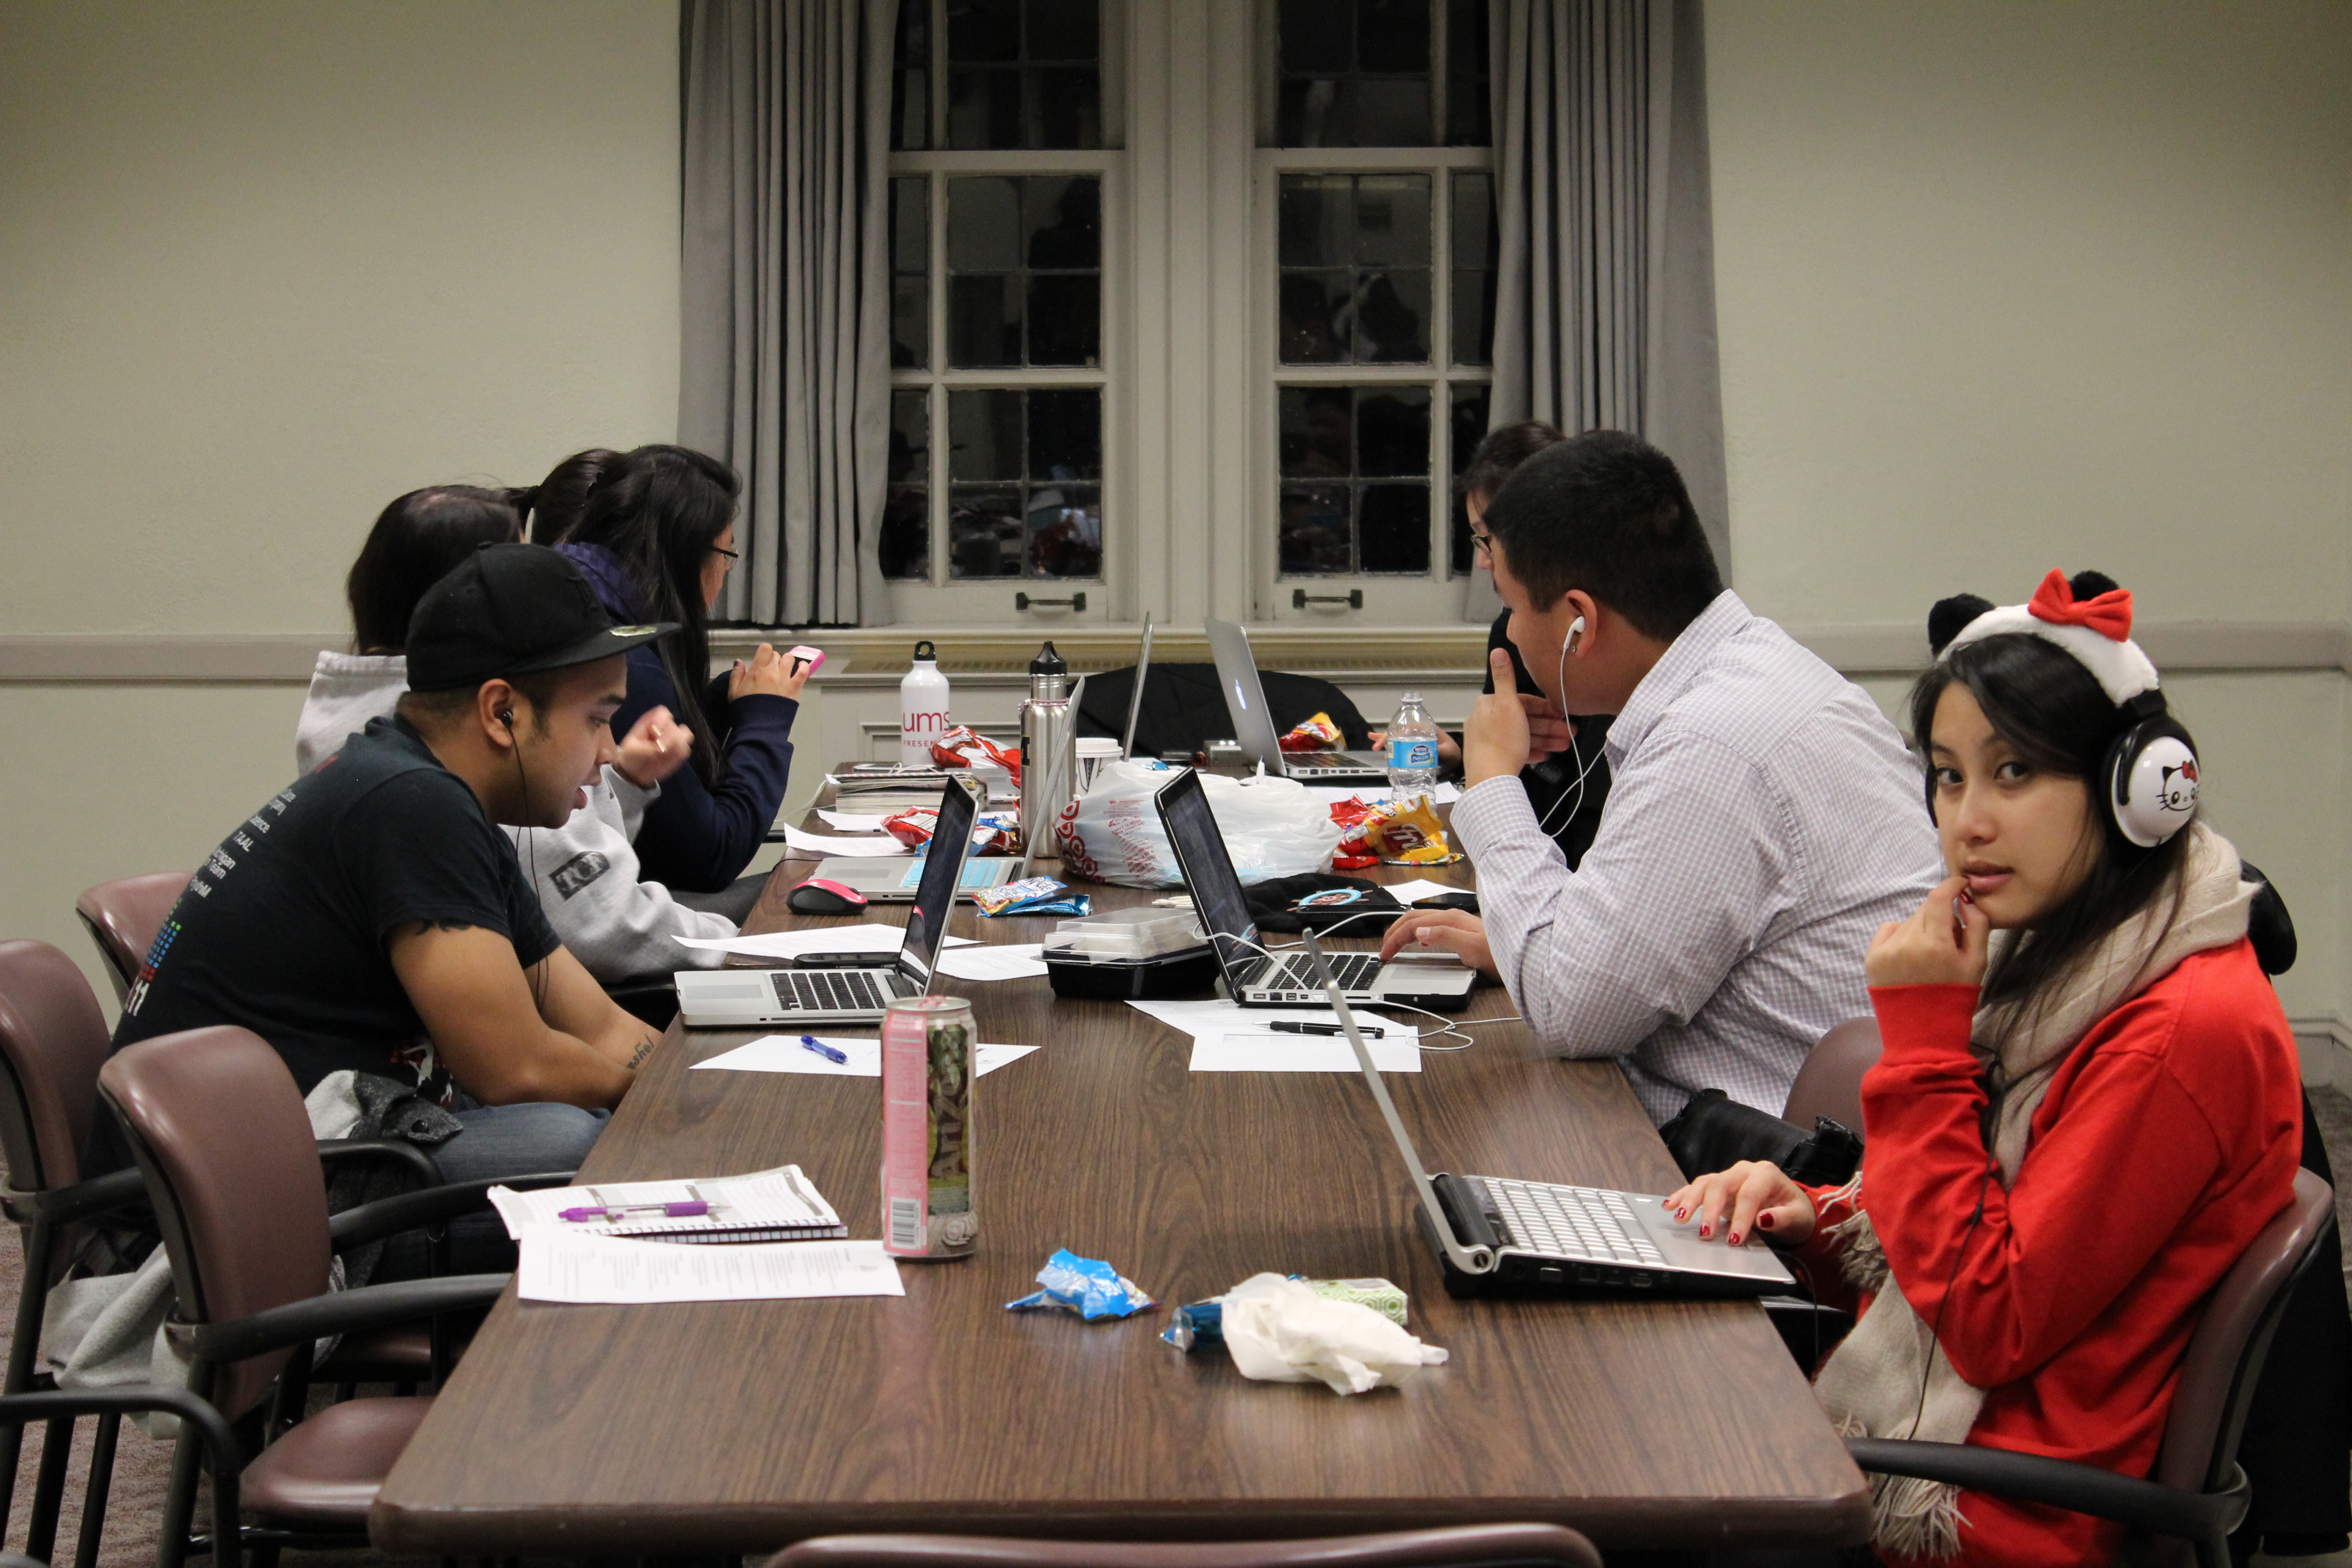 APALA_Michigan_Chapter_partners_with_APIA-Vote_Michigan_and_Asian_American_Legal_Defense___Education_Fund_to_phone_bank_AAPI_voters_to_urge_them_to_vote_in_the_elections.JPG